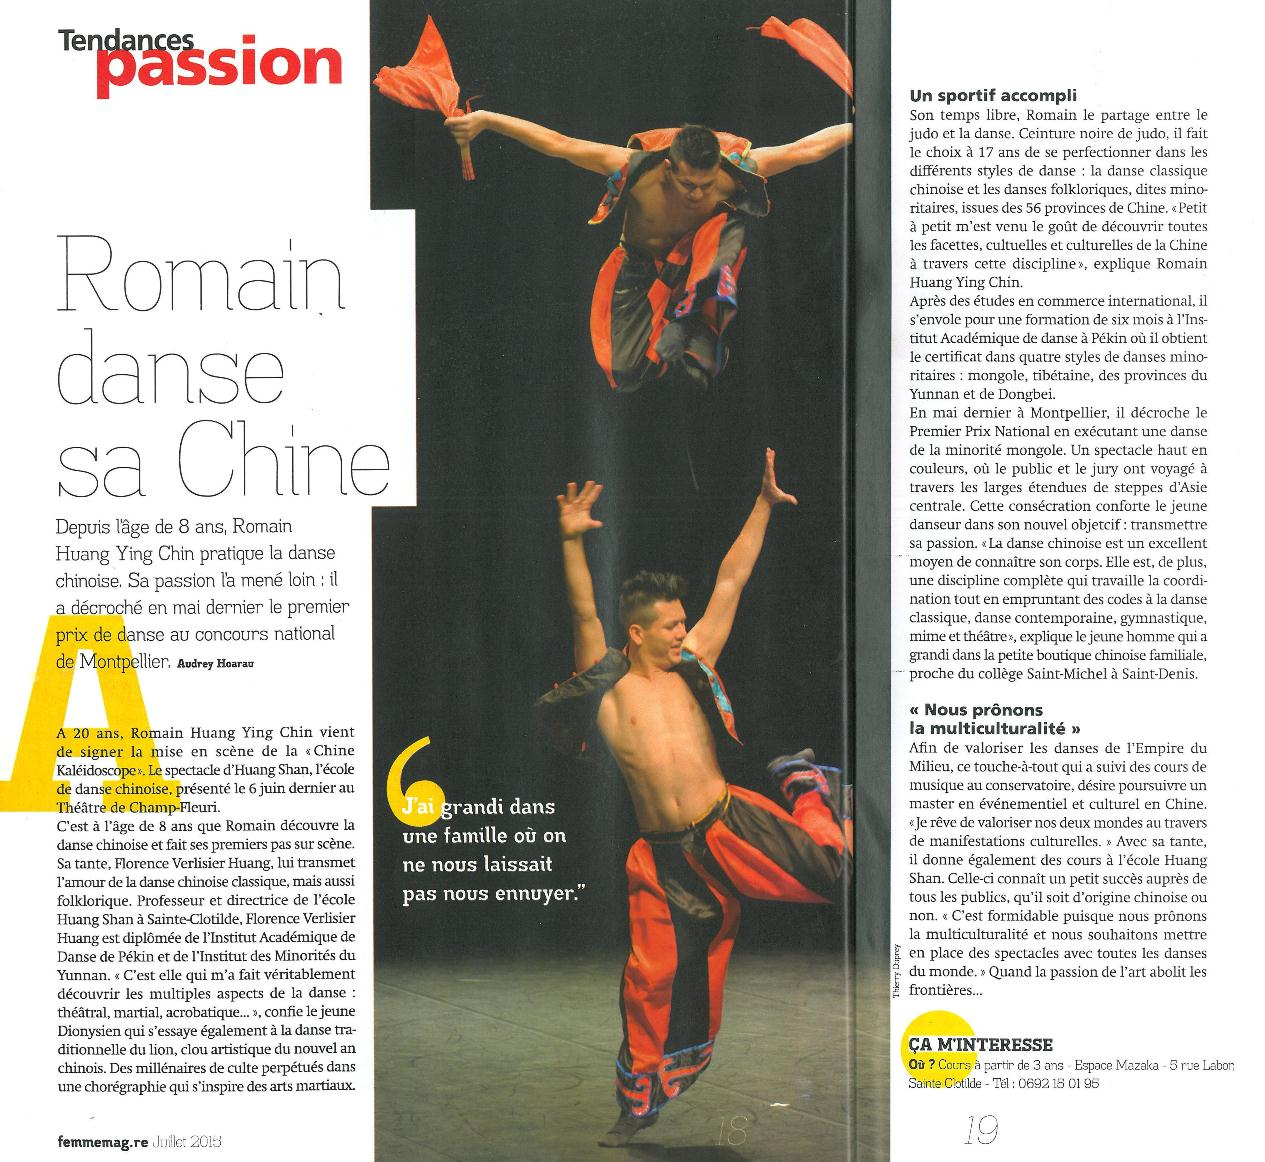 Romain danse sa Chine 4